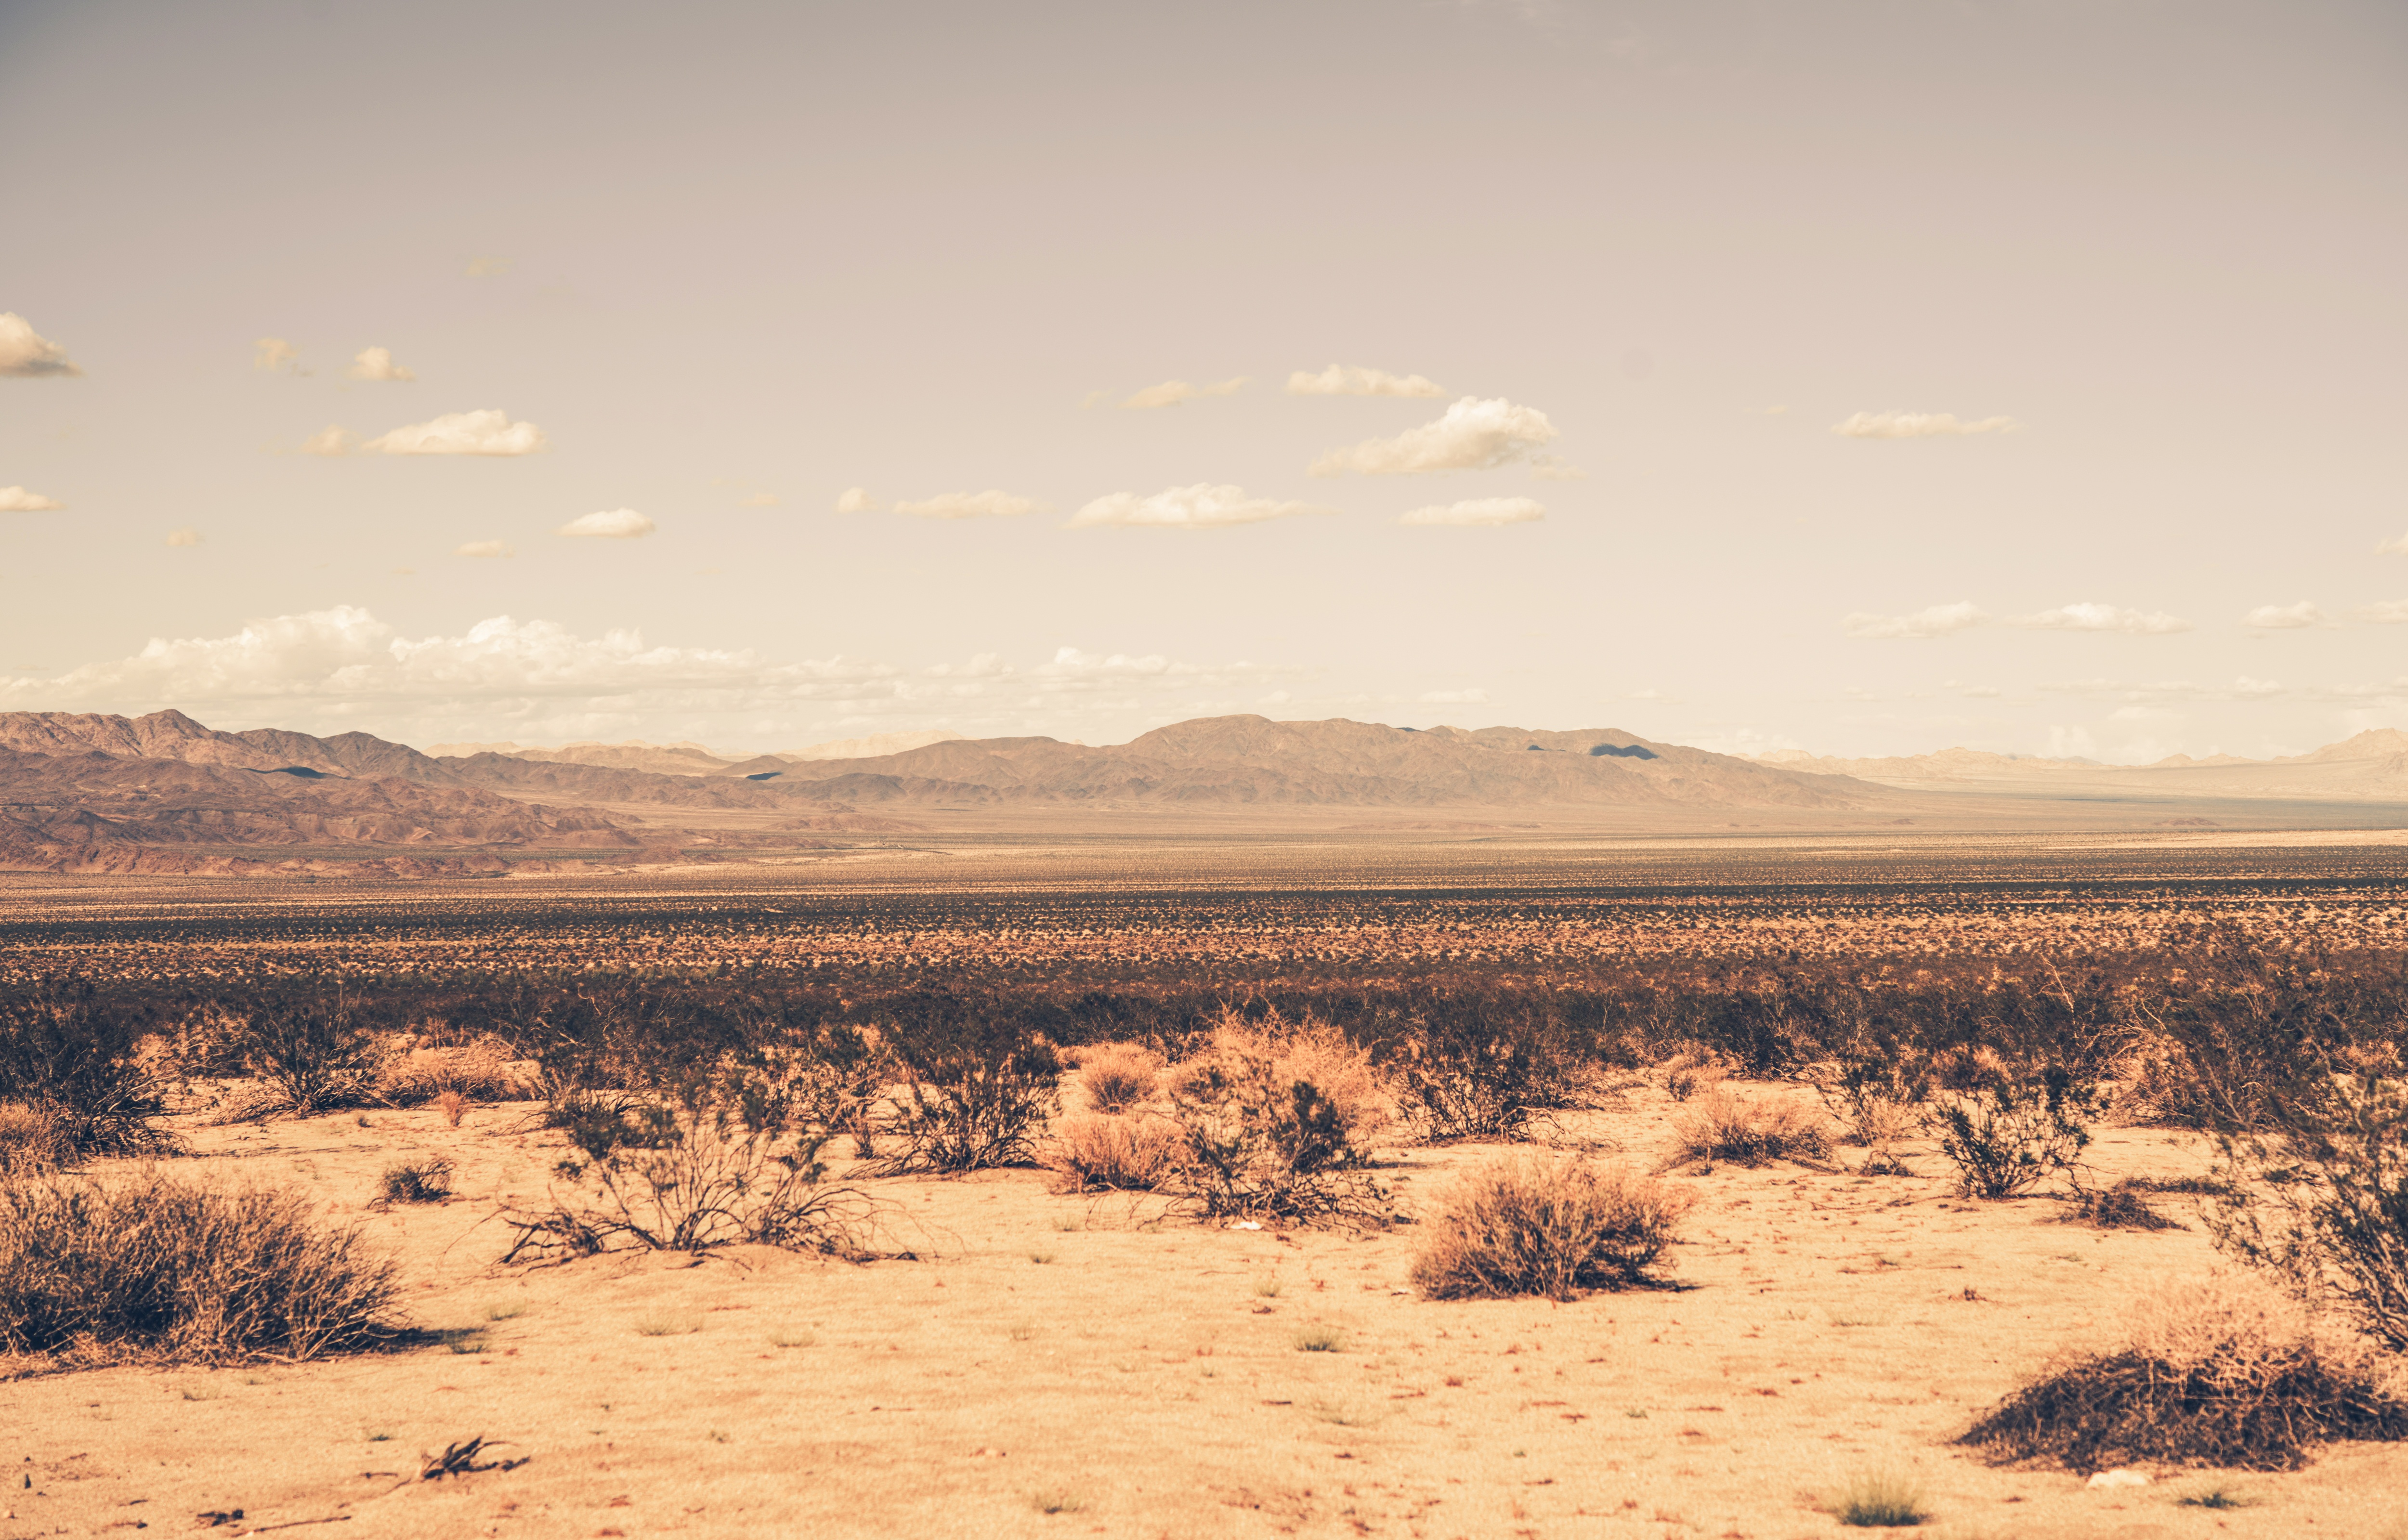 The future for the land that was going to be used for the Palen solar project. Image courtesy of DollarPhotoClub.com